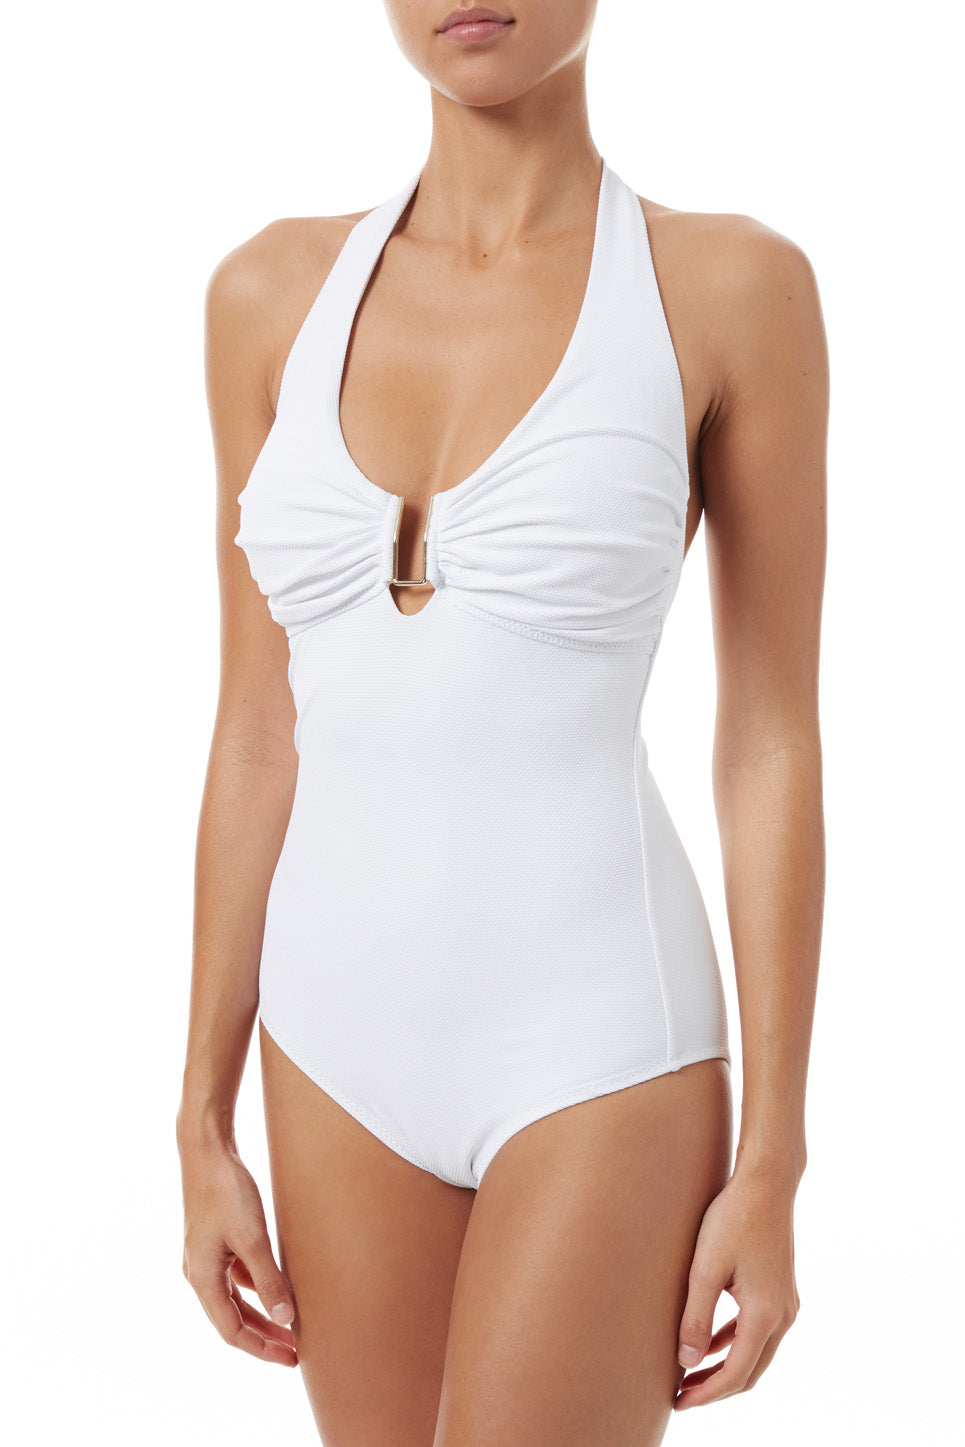 Tampa White Pique Swimsuit